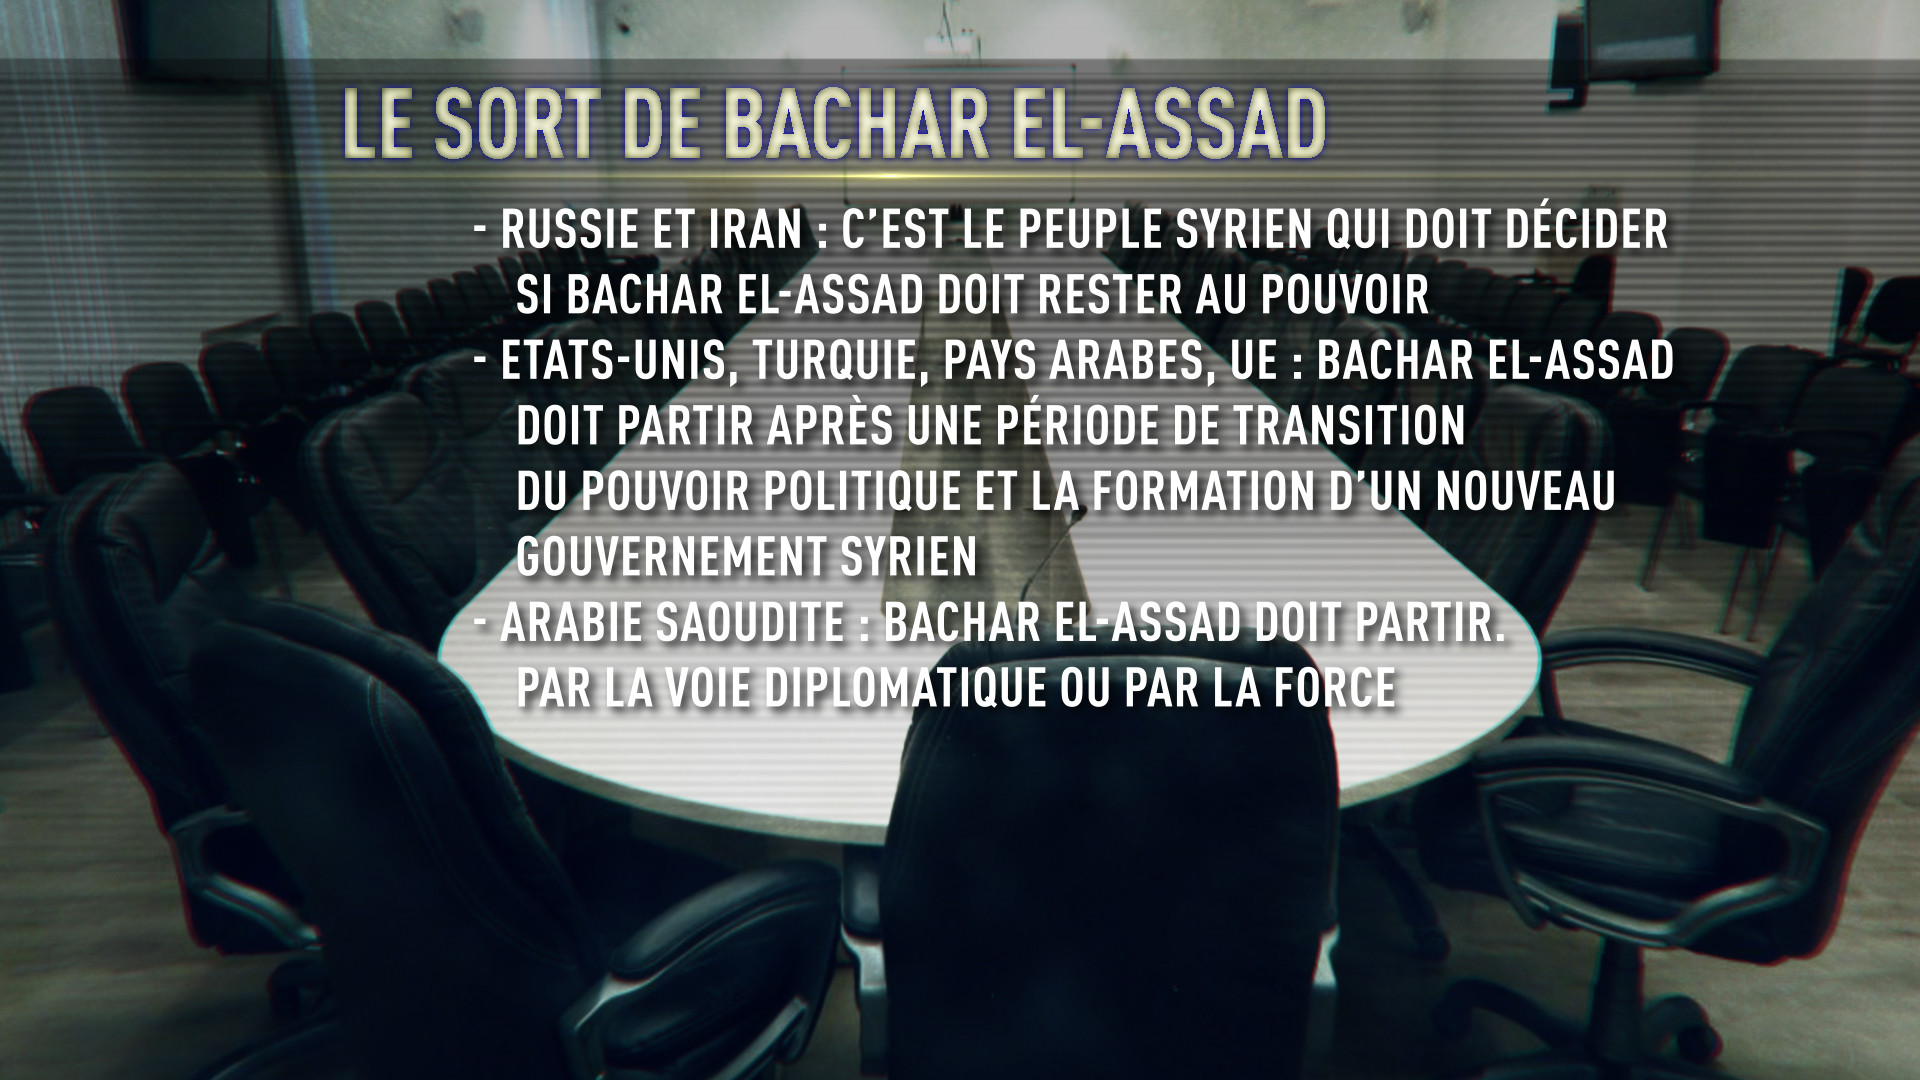 Le sort de Bachar el-Assad